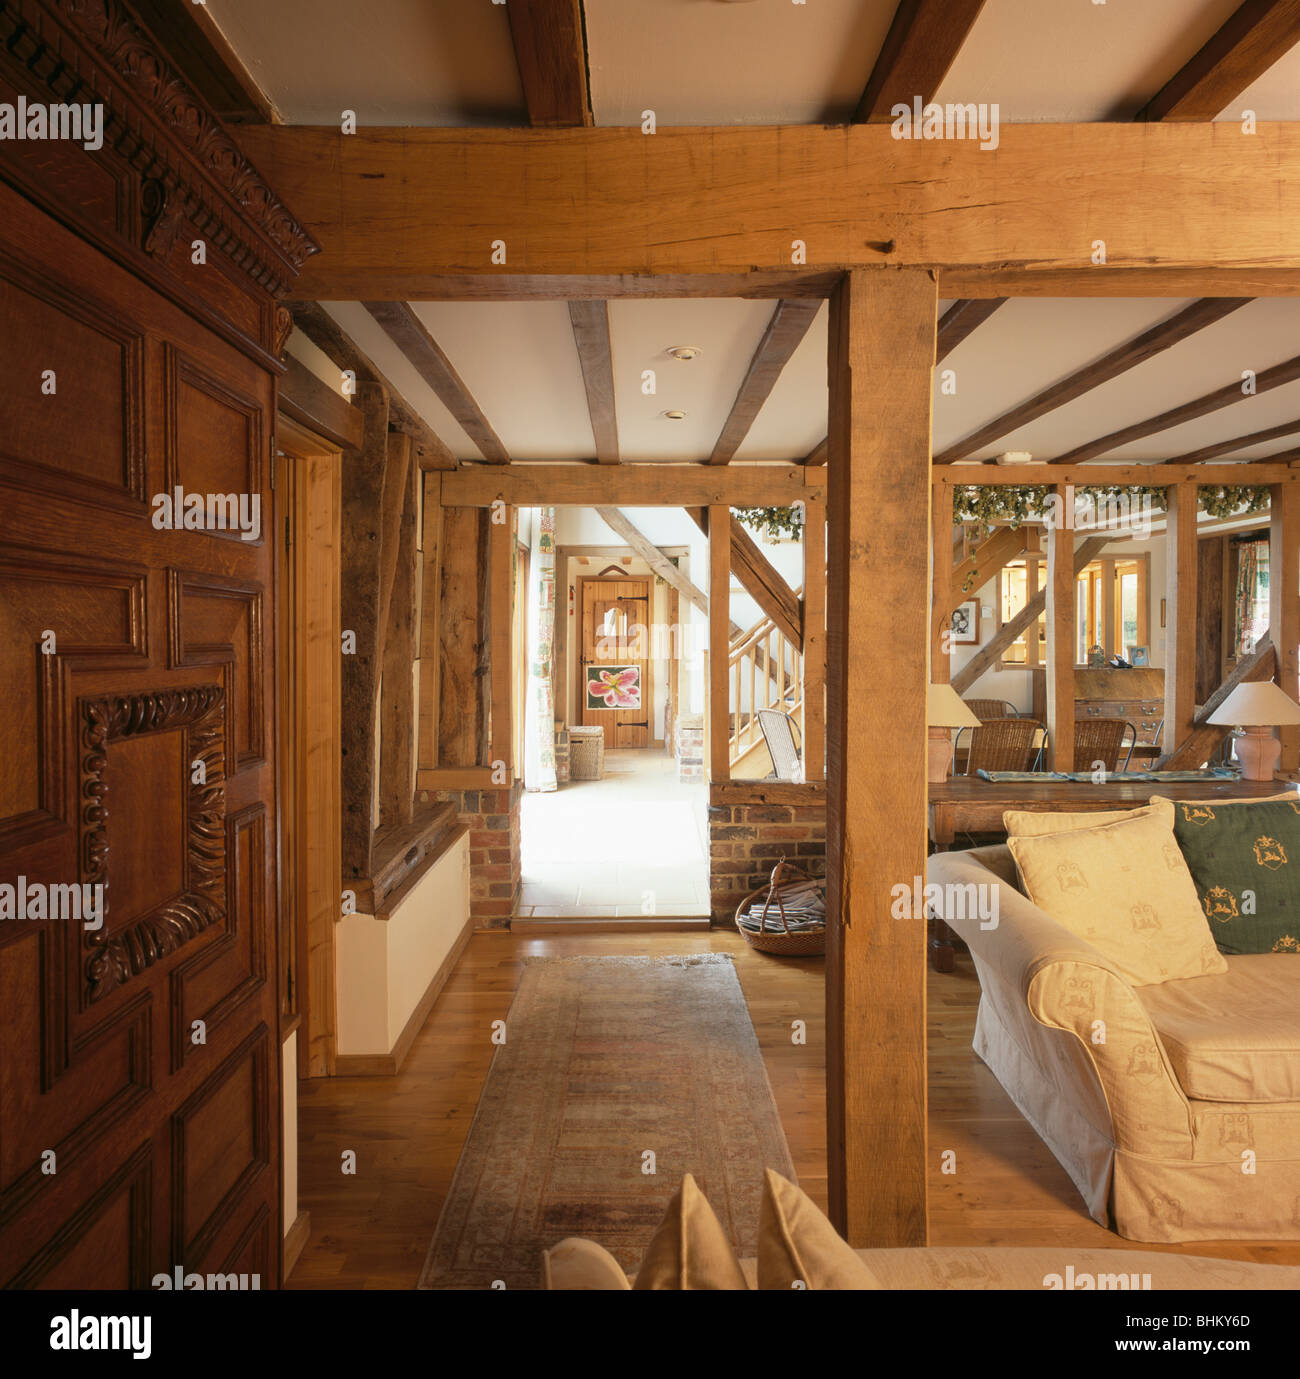 Wood Support Beams ~ A support beam between the floor and ceiling